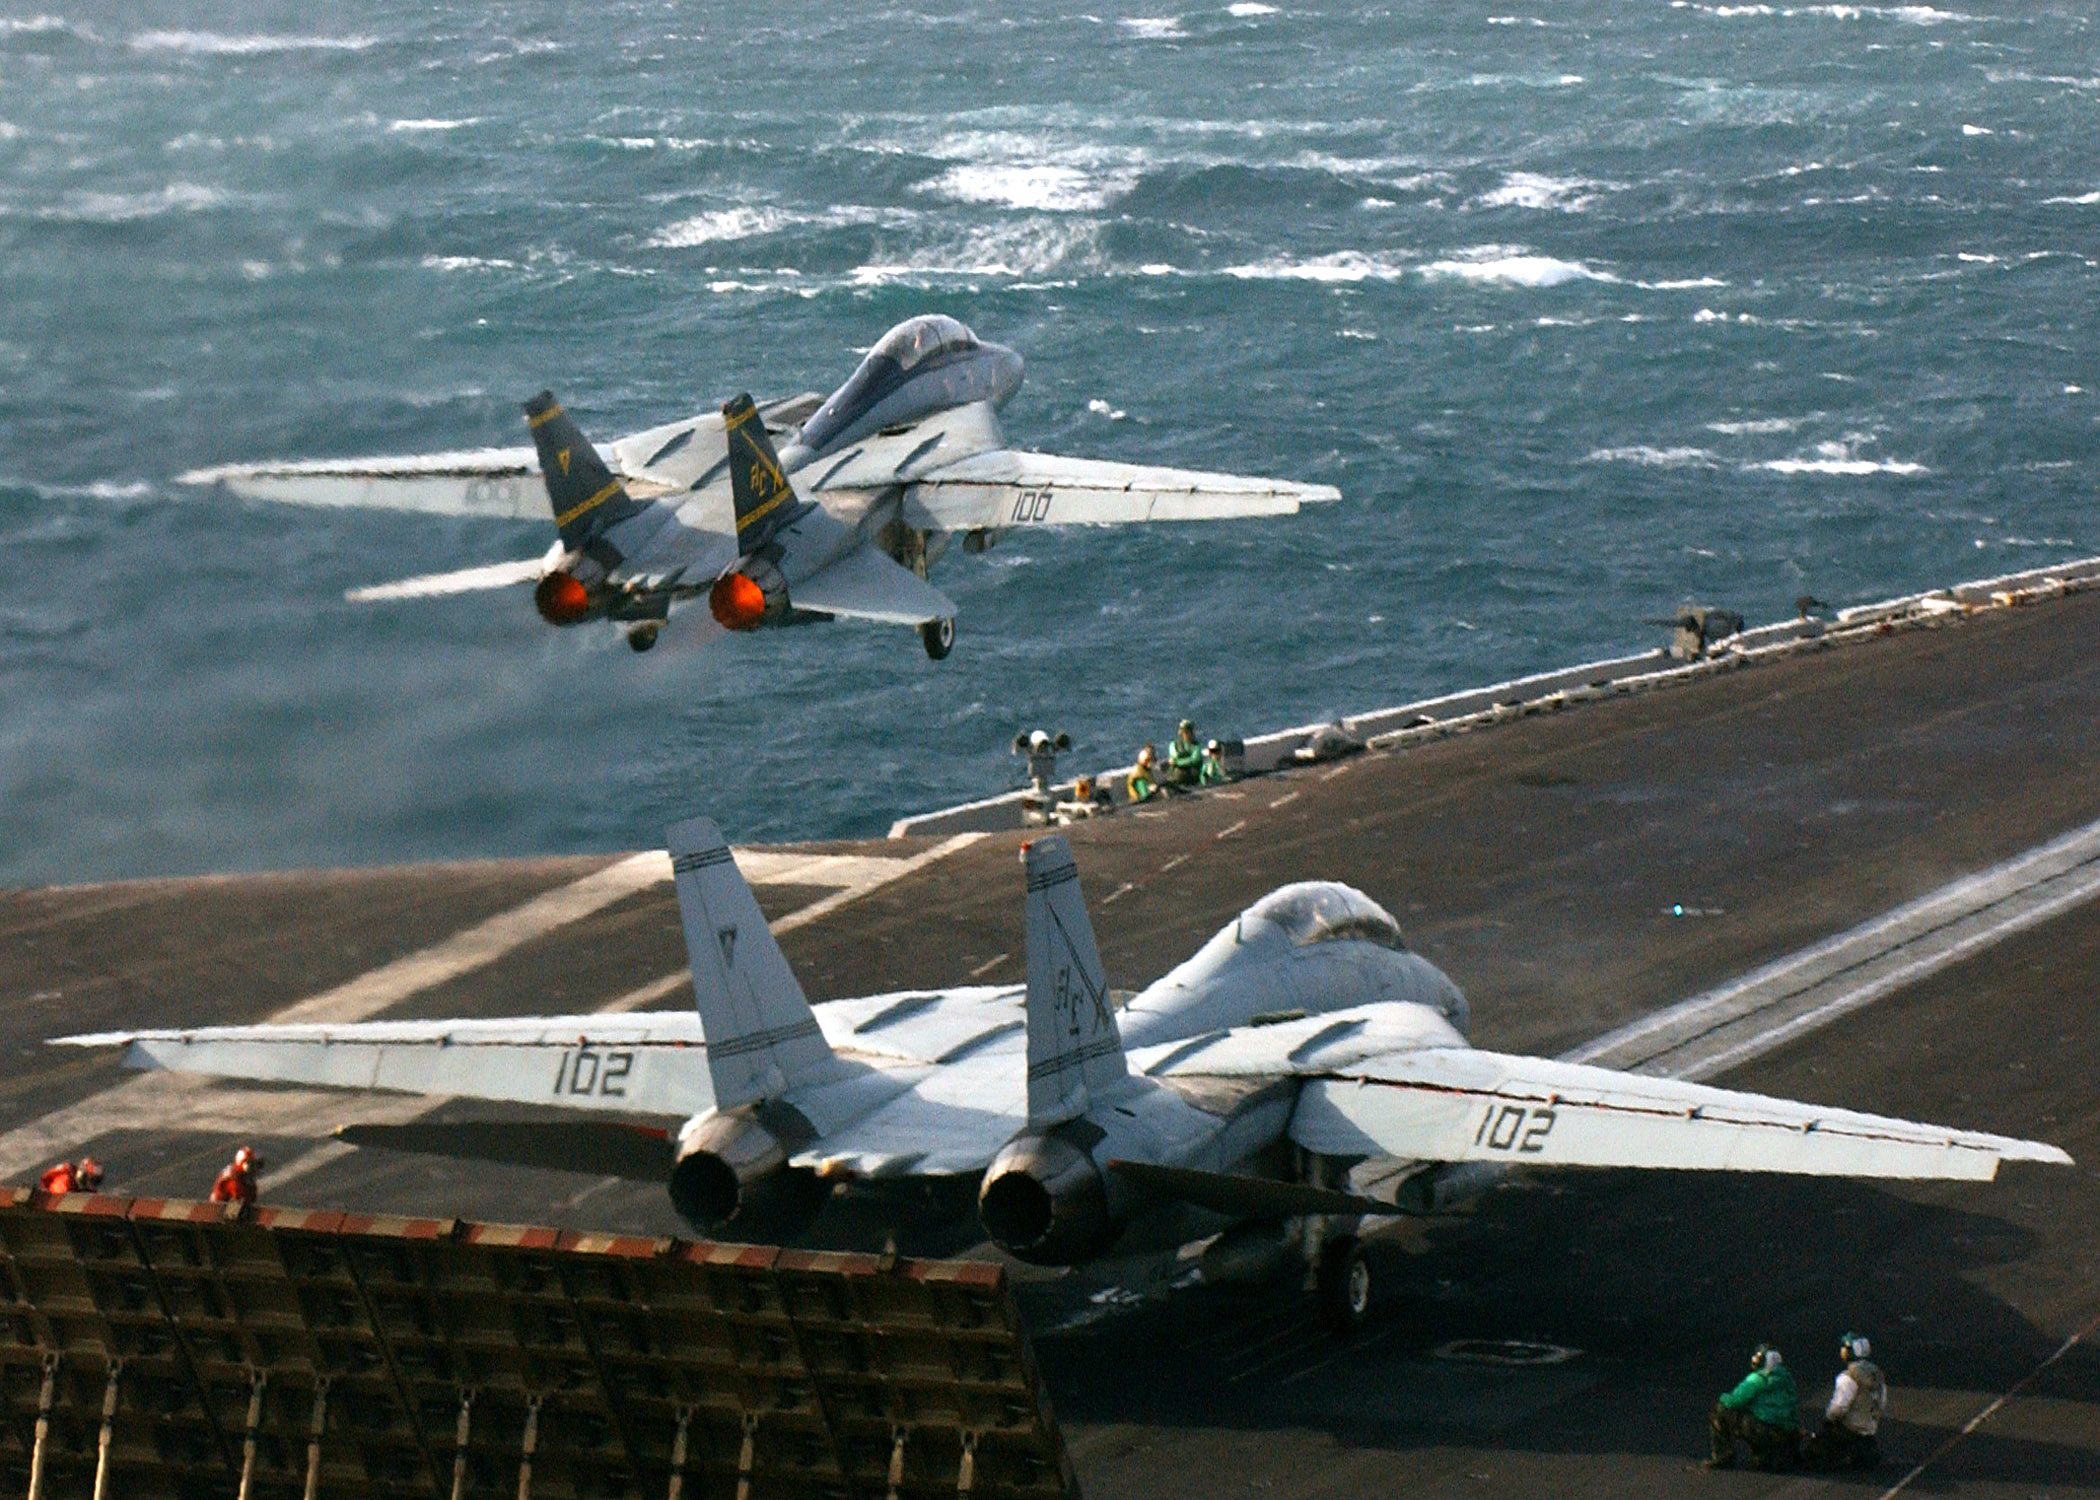 041123-N-5345W-015 Persian Gulf (Nov. 23, 2004) - An F-14B Tomcat assigned to the ÒSwordsmenÓ, of Fighter Squadron Three Two (VF-32), launches from one of the waist catapults as another Tomcat prepares to launch from the bow catapults on the flight deck of the Nimitz-class aircraft carrier USS Harry S. Truman (CVN 75).  Truman's Carrier Strike Group Ten (CSG-10) and her embarked Carrier Air Wing Three (CVW-3) is currently on deployment in support of the Global War On Terrorism. U.S. Navy photo by Photographers Mate Airman Kristopher Wilson (RELEASED)